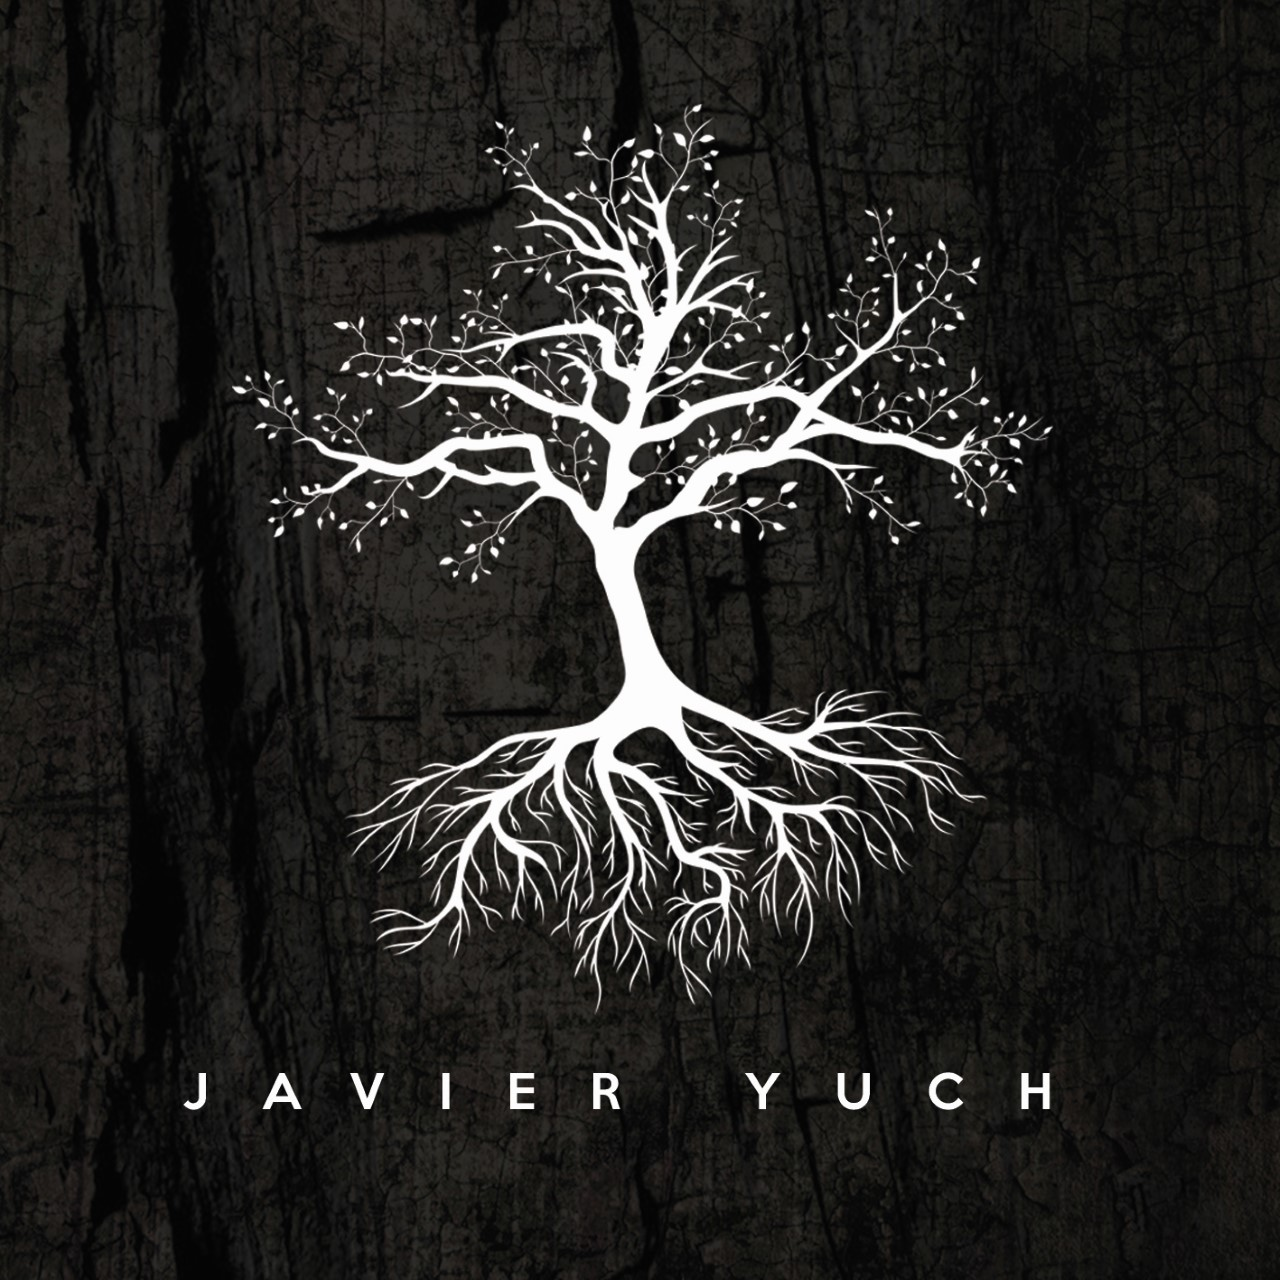 Sello Discográfico - Productora Musical - Javier Yuch